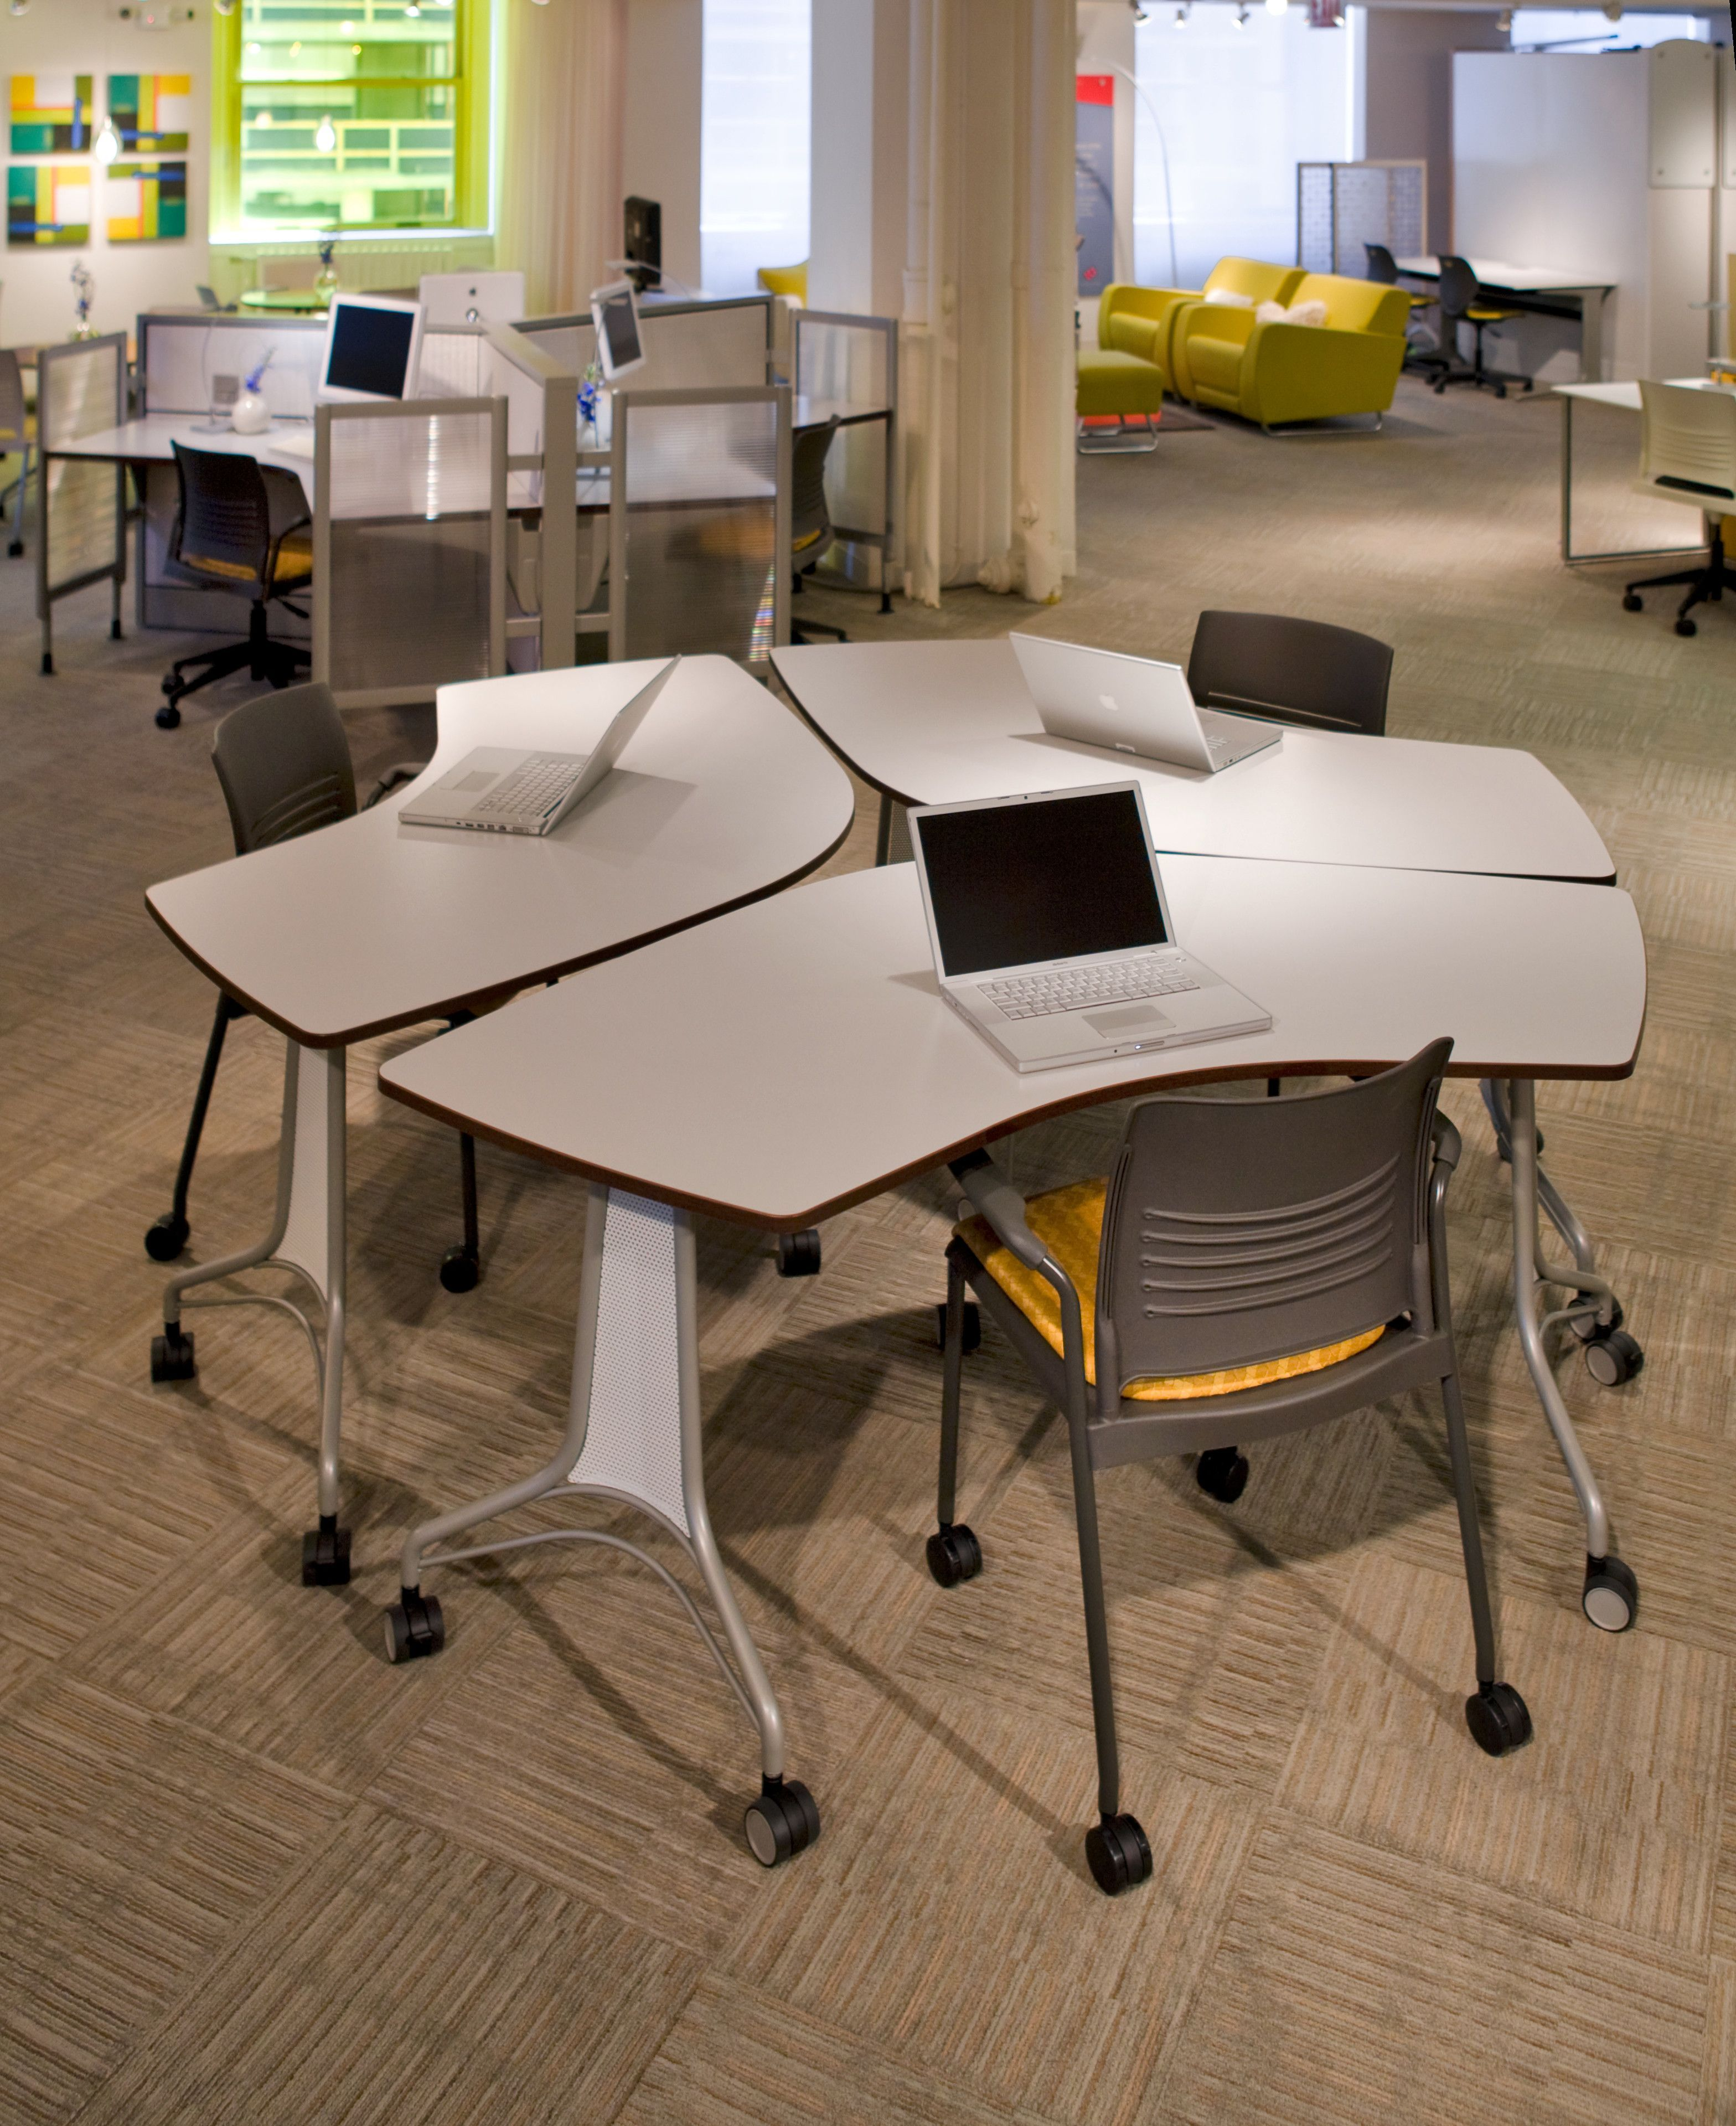 Enlite tables and strive chairs make reconfiguring